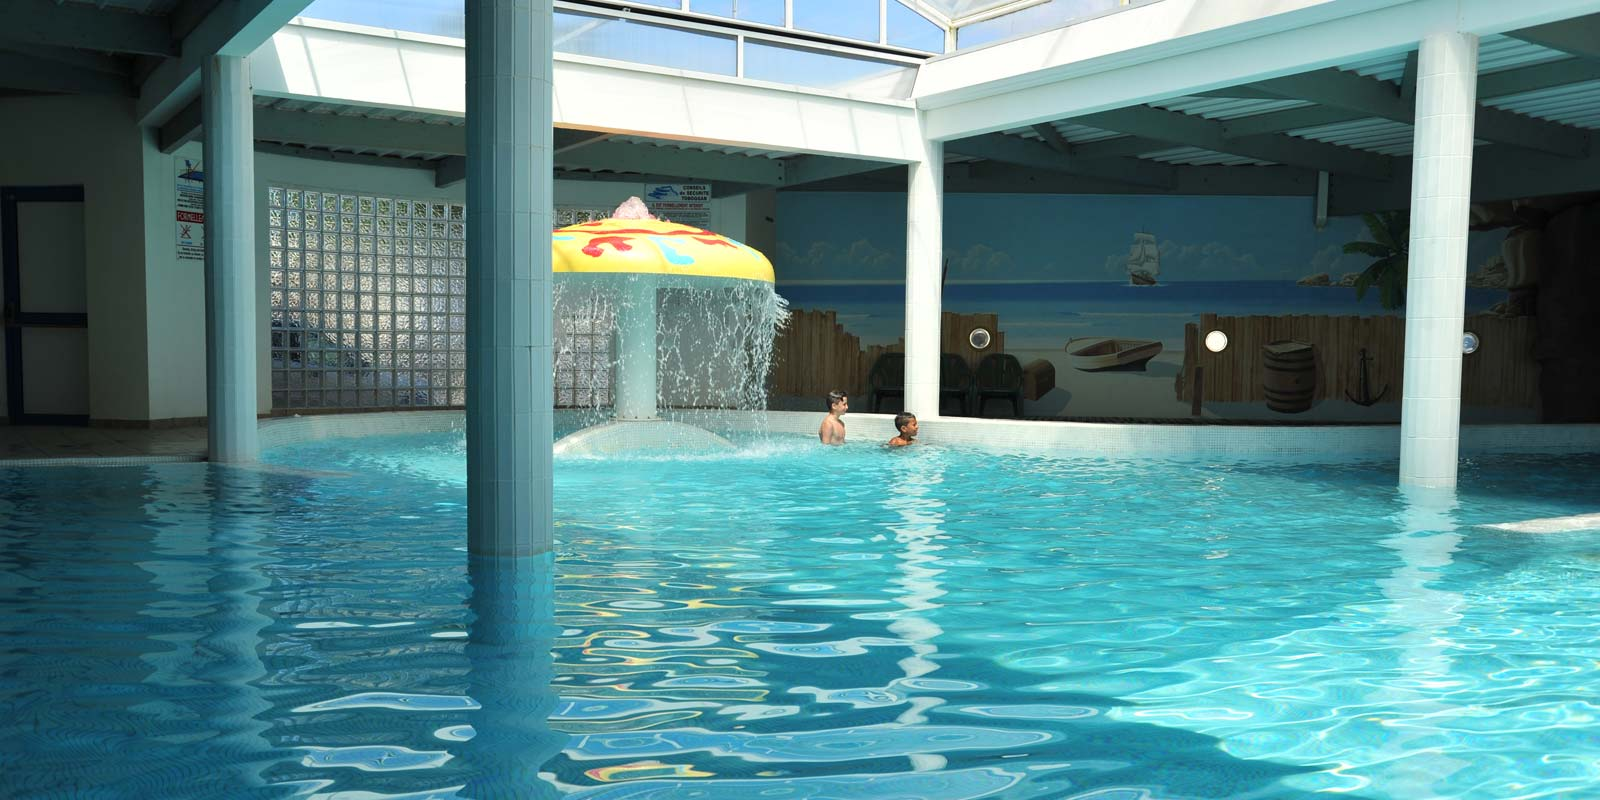 The indoor swimming pool of the Vendée campsite in Saint-Hilaire